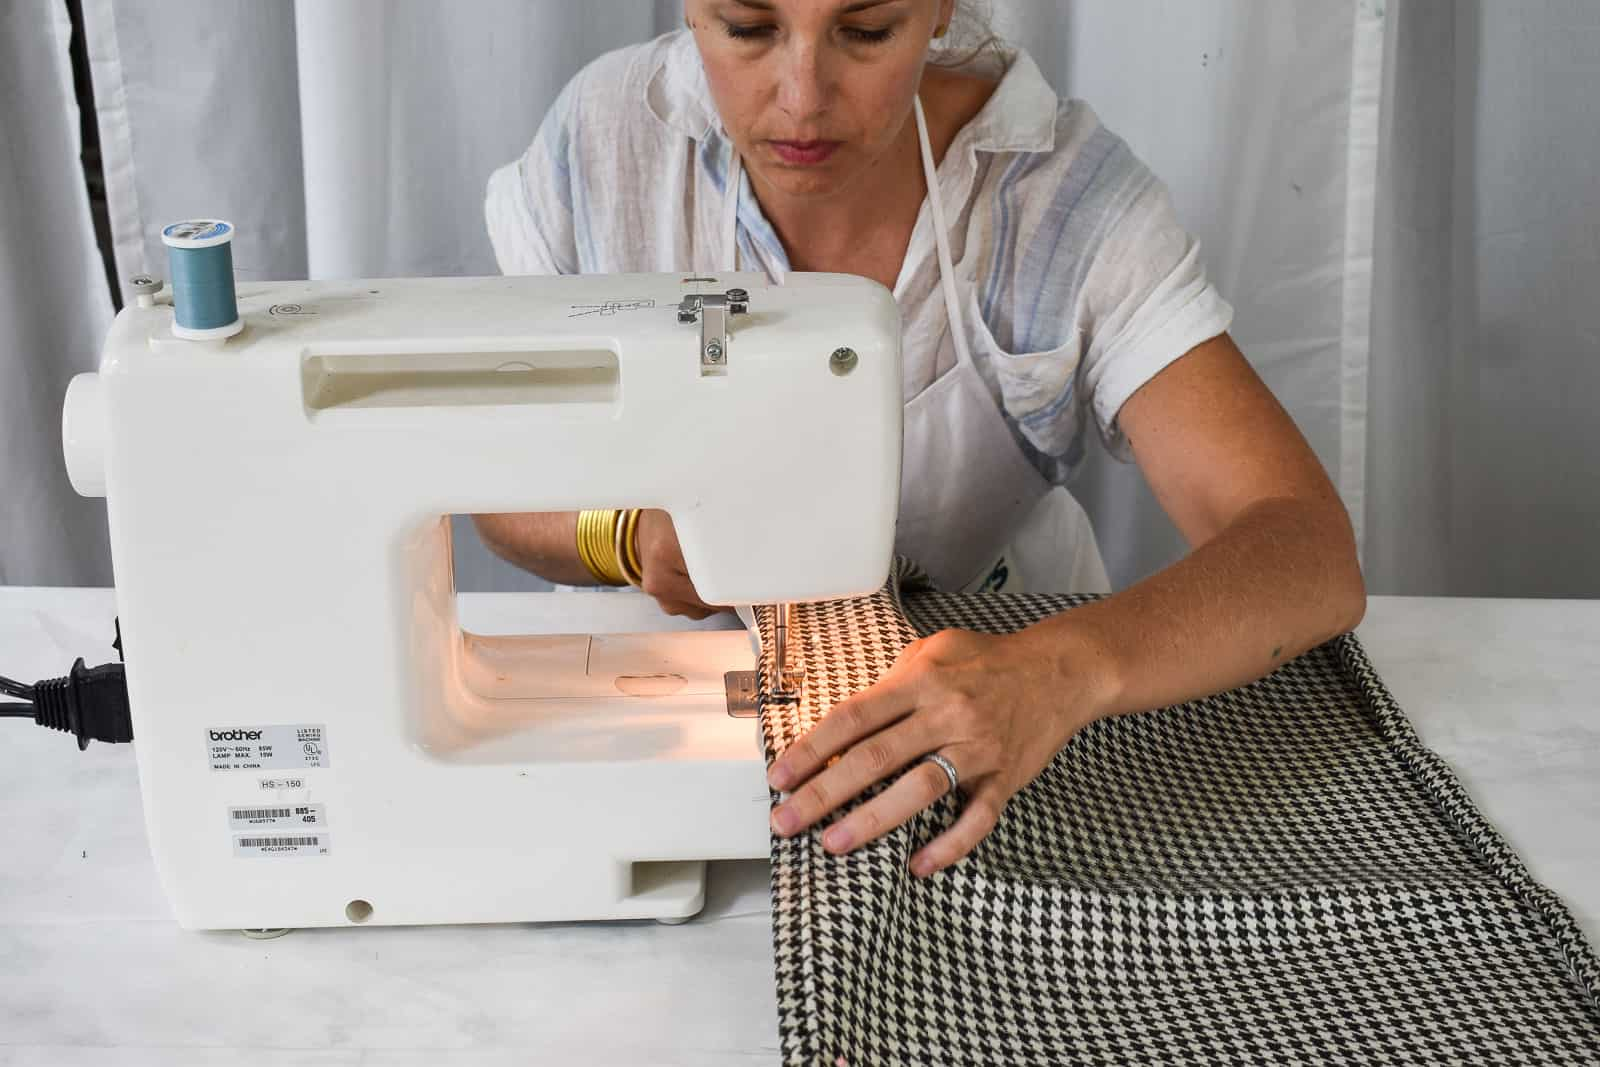 hemming the edge of the table runner fabric